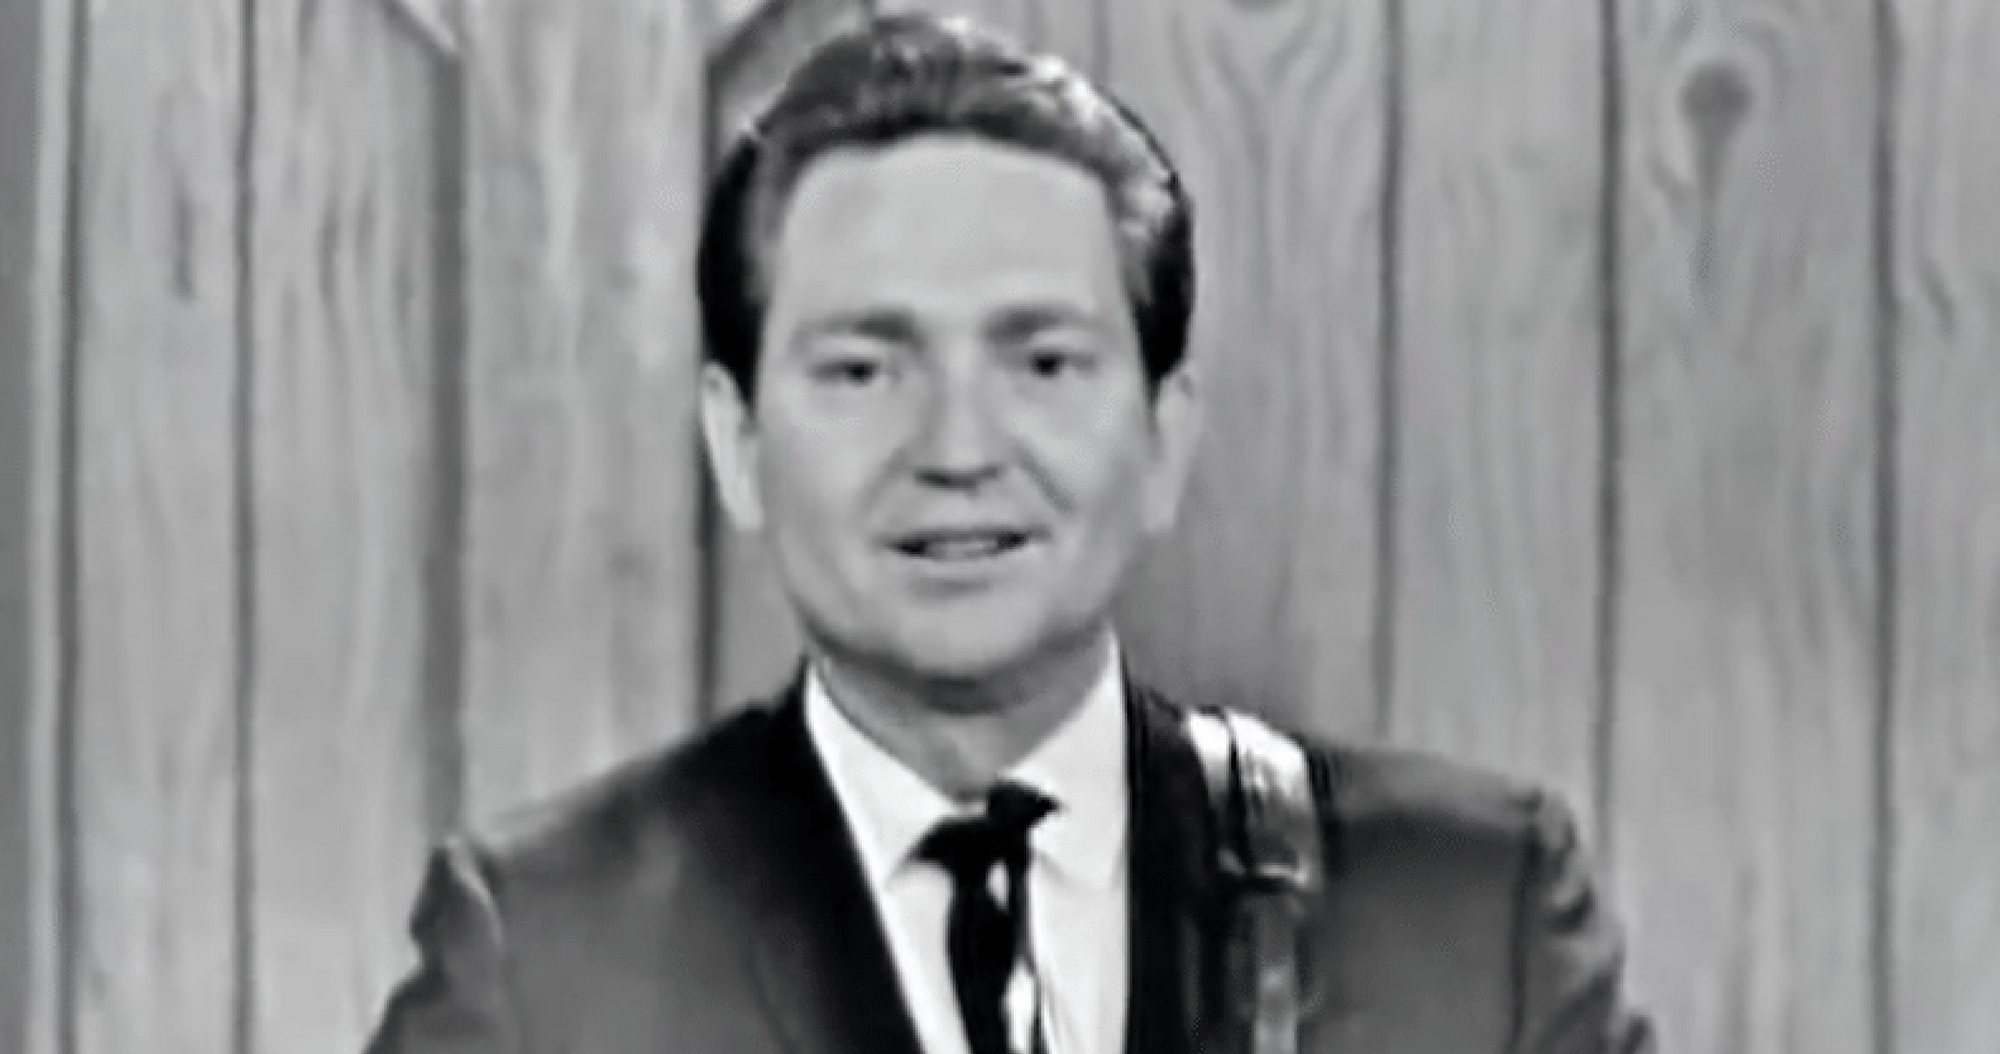 This Rare Video Of Willie Nelson Is A Blast From The Past